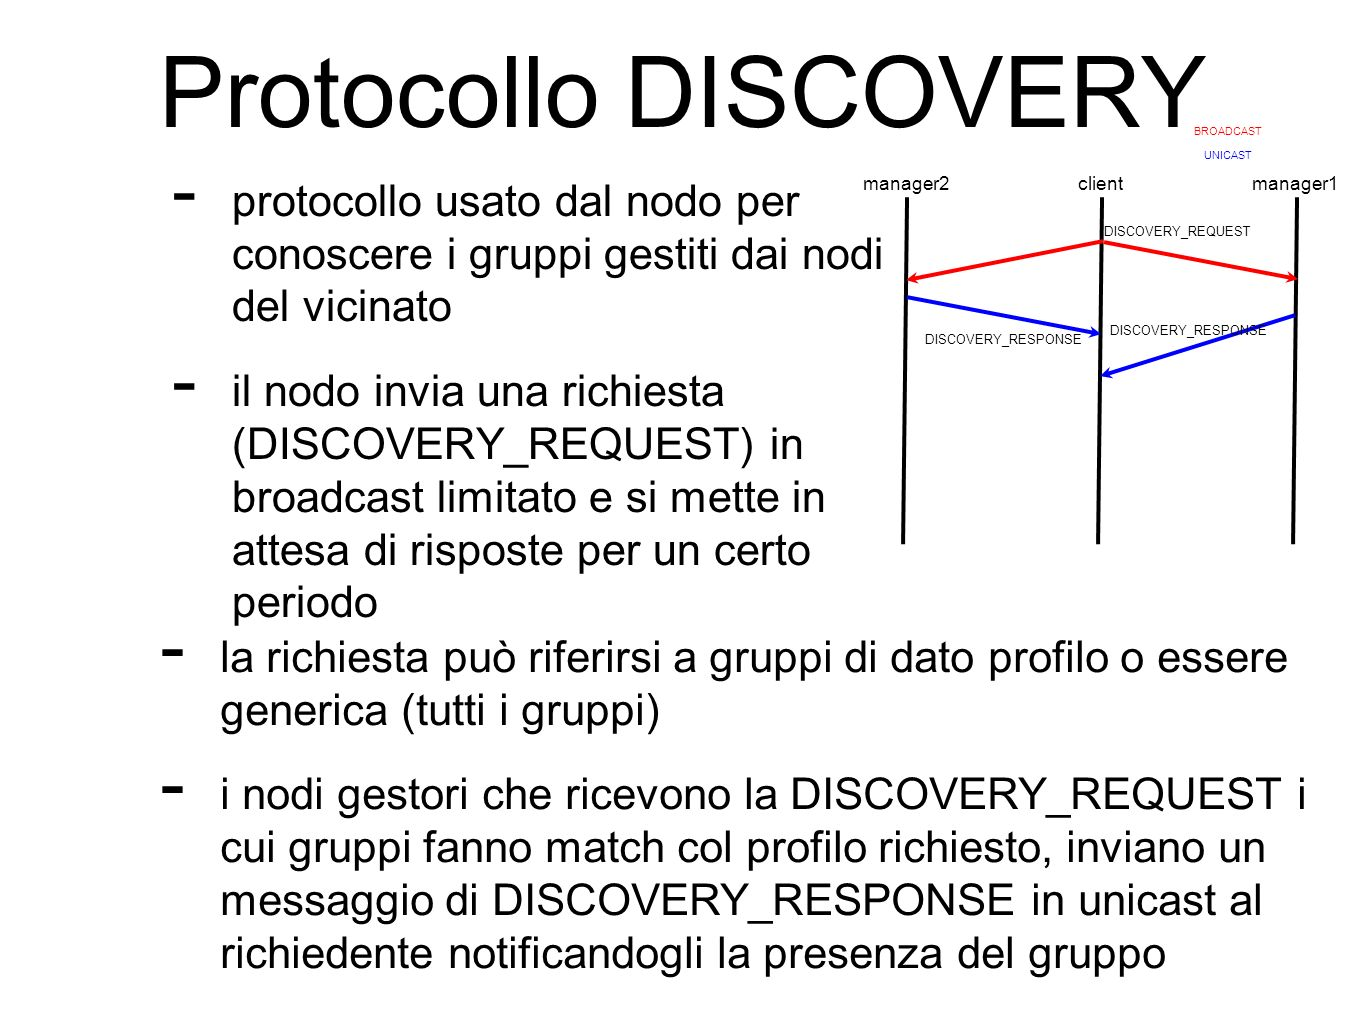 Protocollo DISCOVERYDISCOVERY_REQUEST. client. DISCOVERY_RESPONSE. BROADCAST. UNICAST. manager1. manager2.